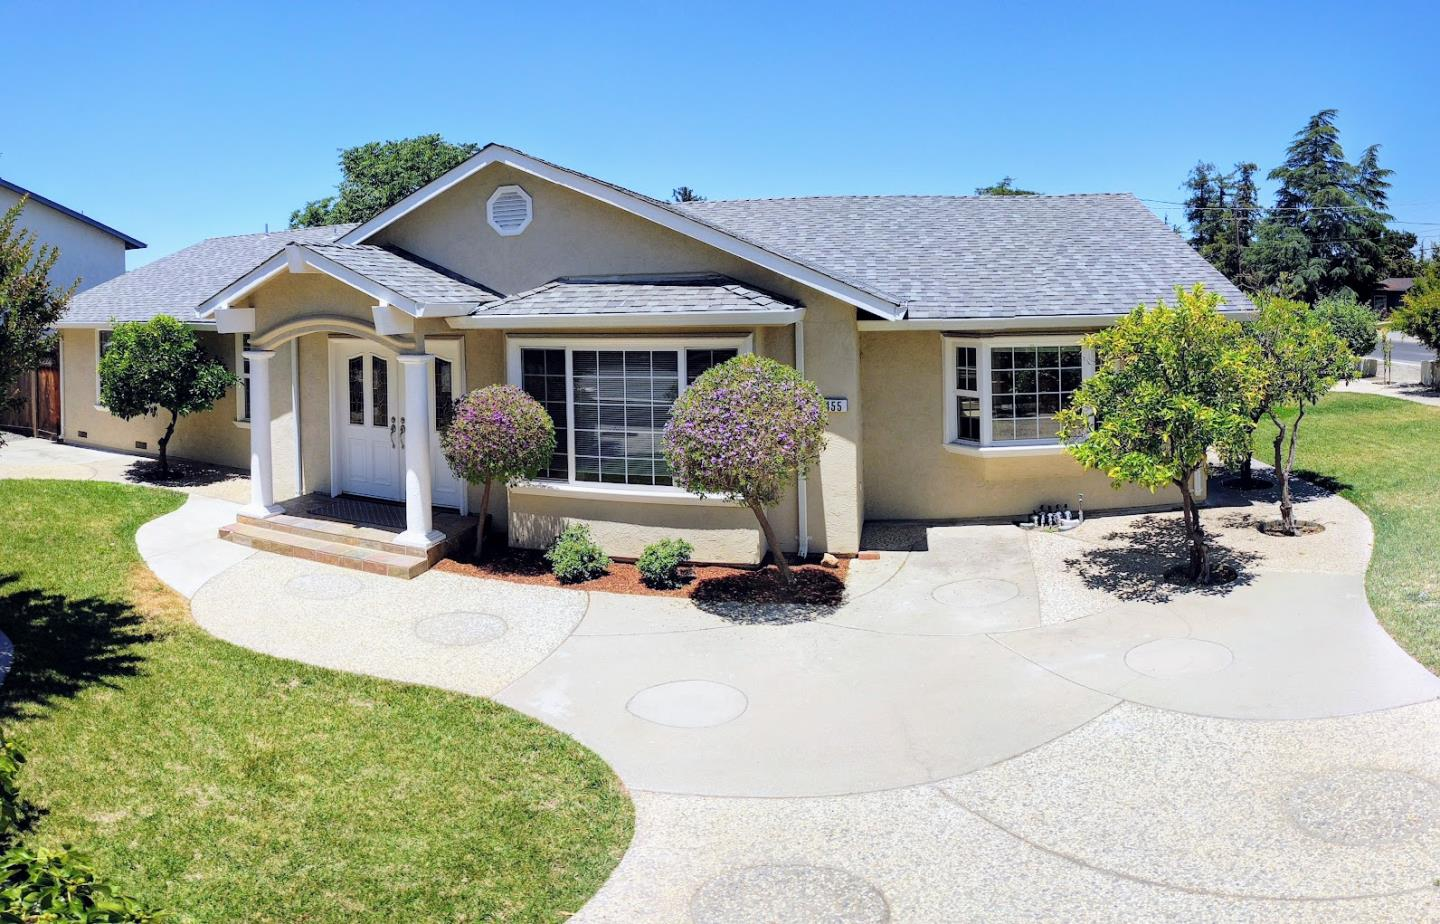 Single Family Home for Sale at 455 W Sunnyoaks Avenue Campbell, California 95008 United States